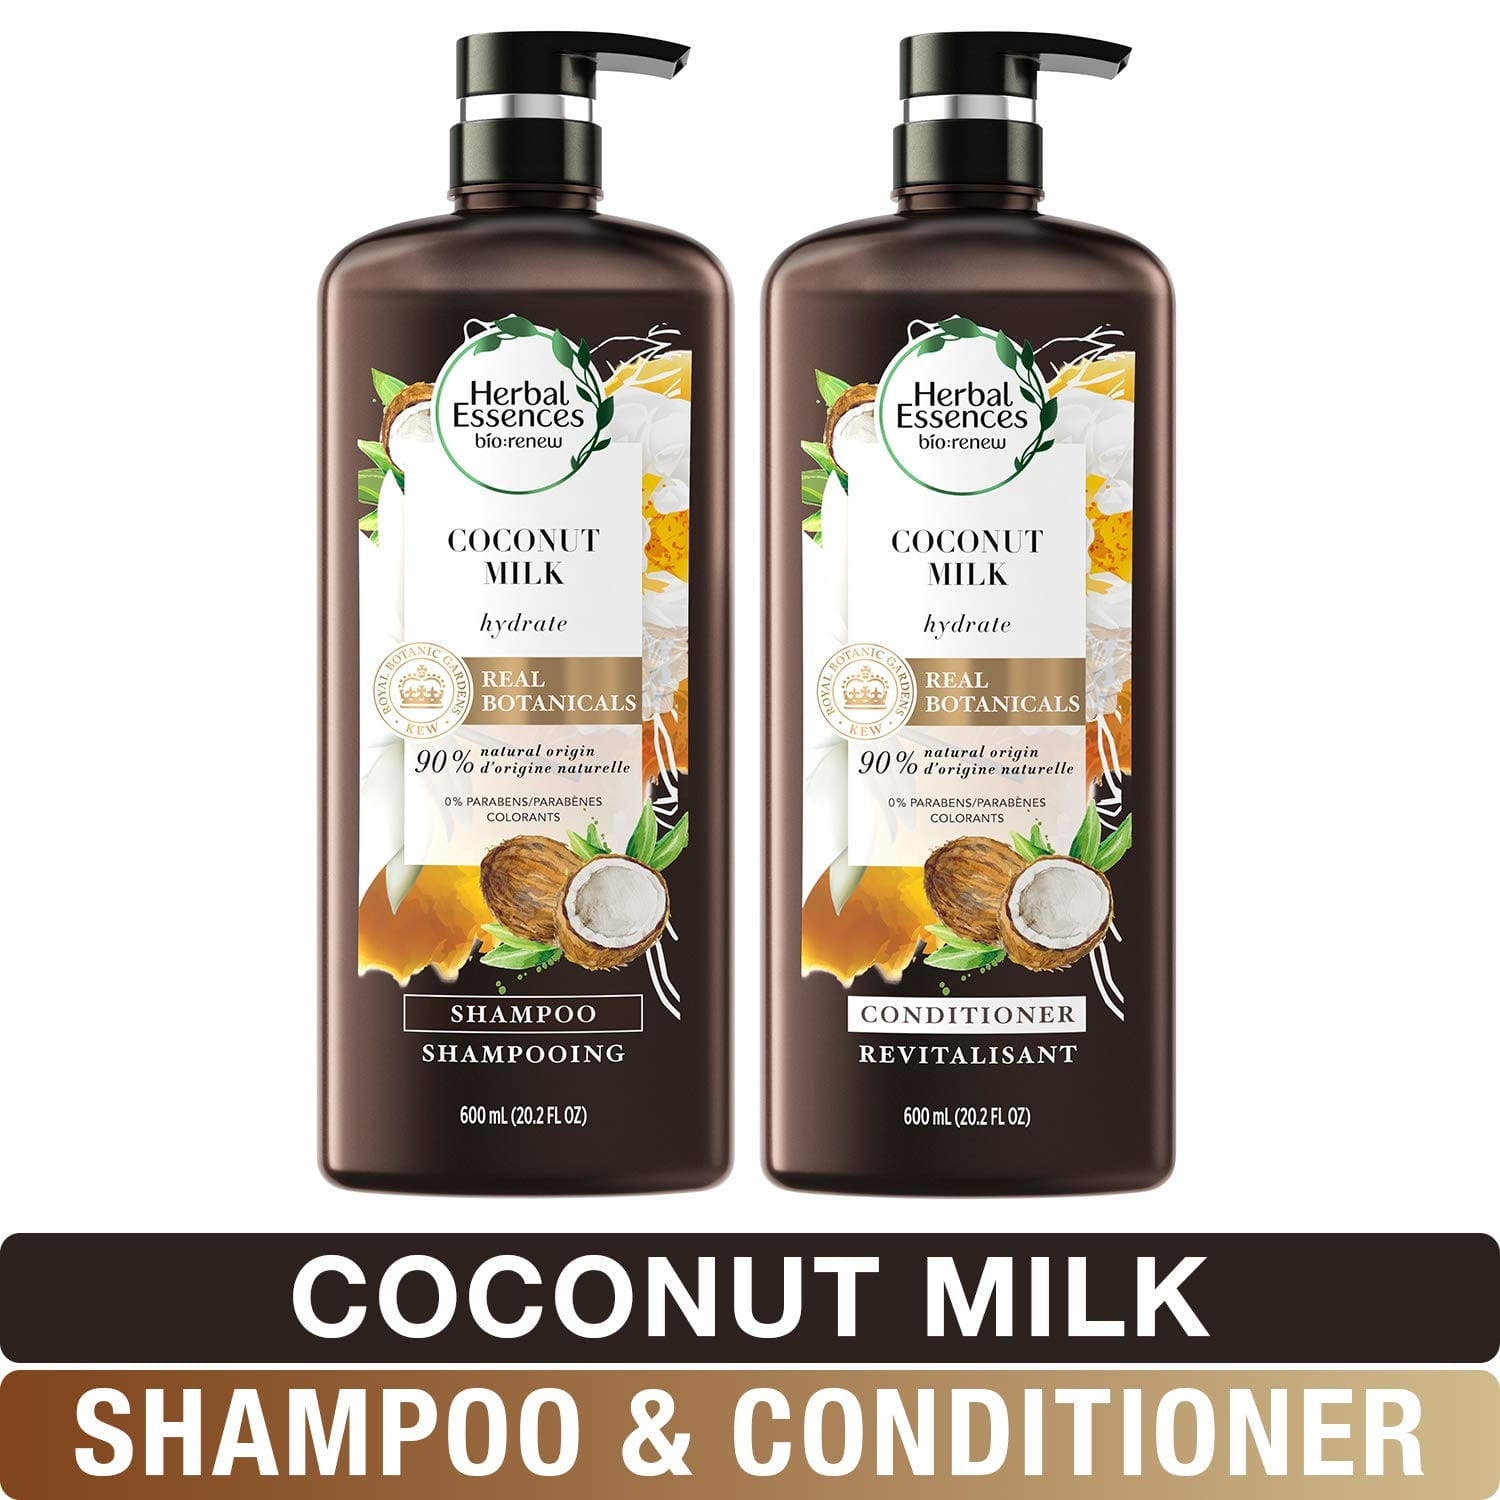 Amazon: 30% Off Select Shampoo and Conditioner Kits from Herbal Essences & Pantene + Free Shipping w/ Prime